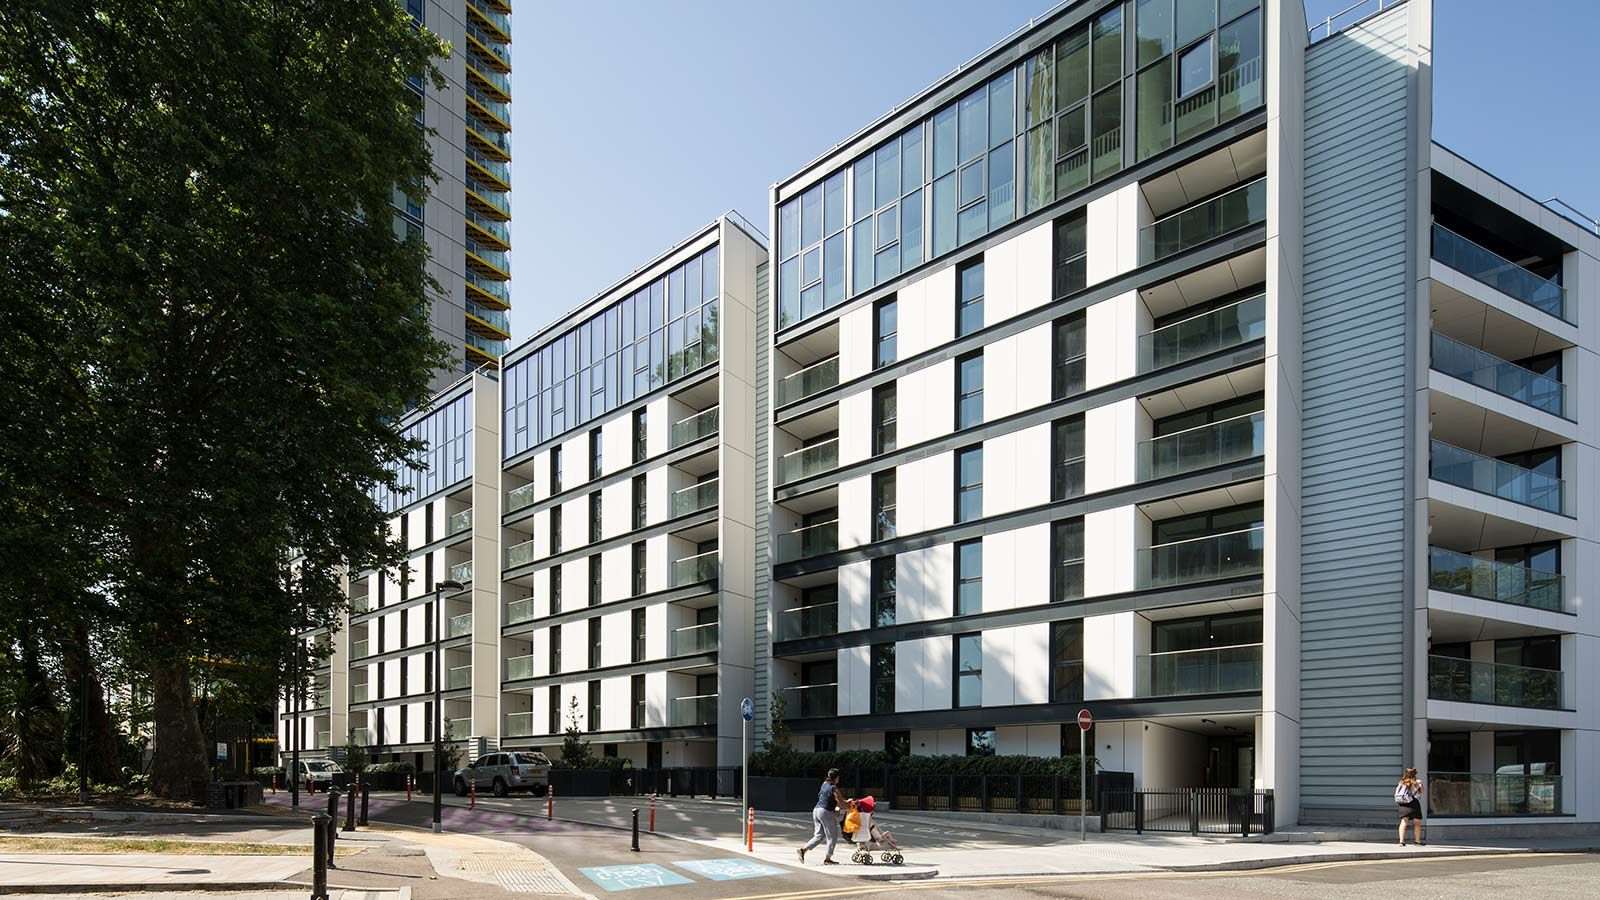 Street view of Highpoint apartments - Mace Group